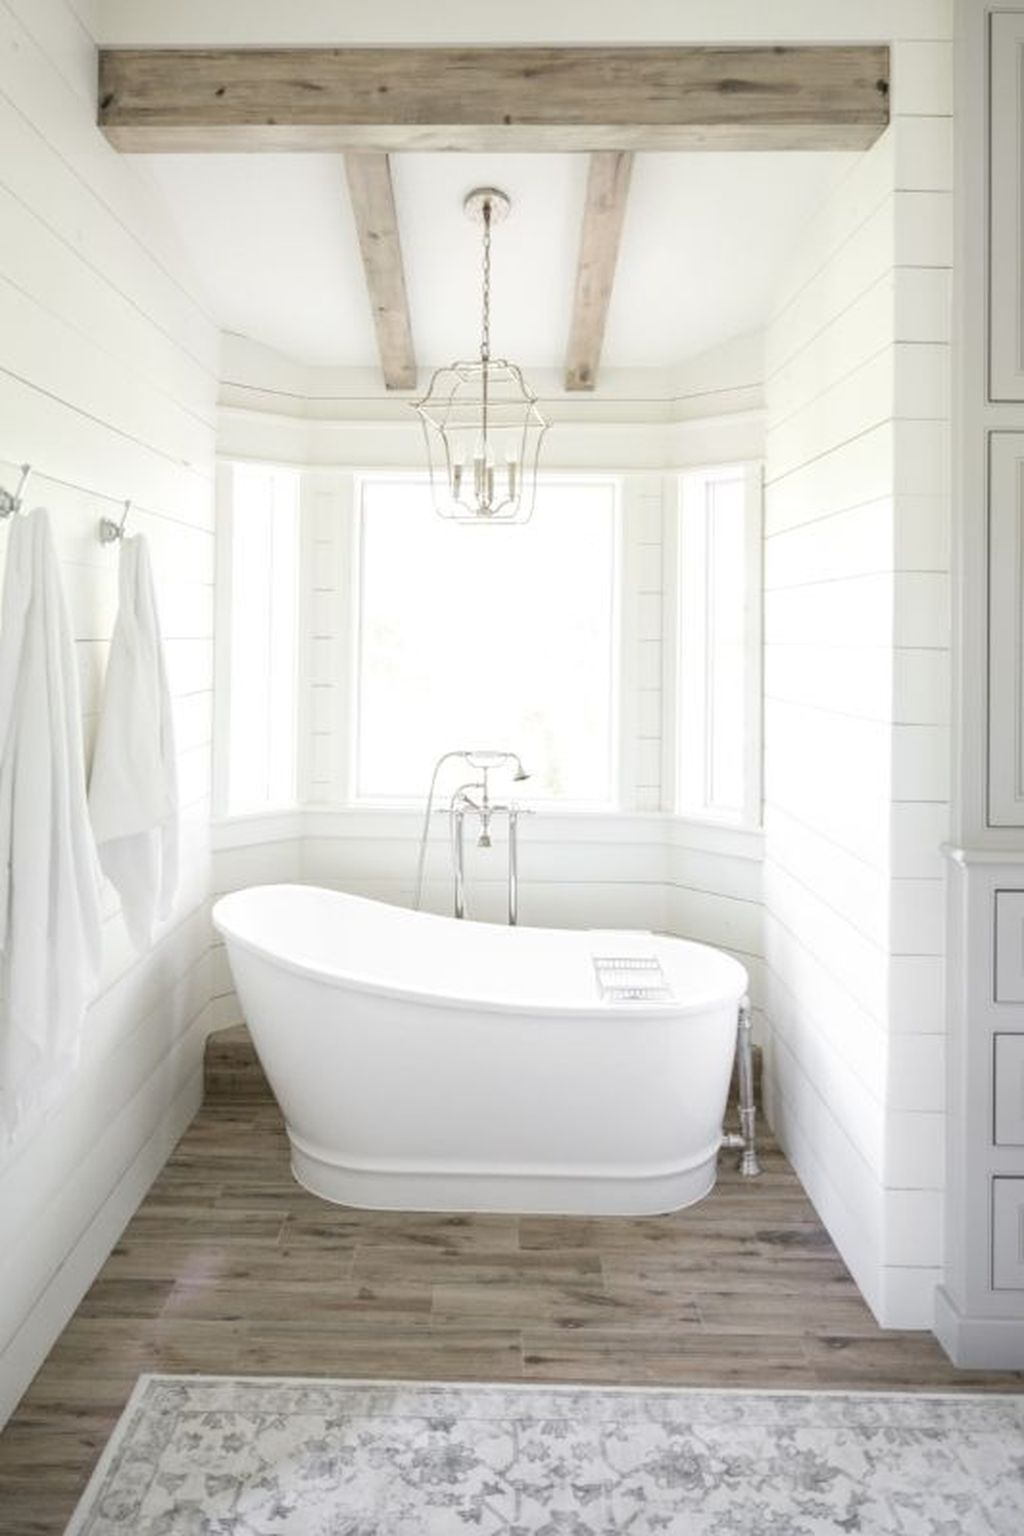 Best Ways to Clean Bathroom Tiles | Master Bath redo | Pinterest ...